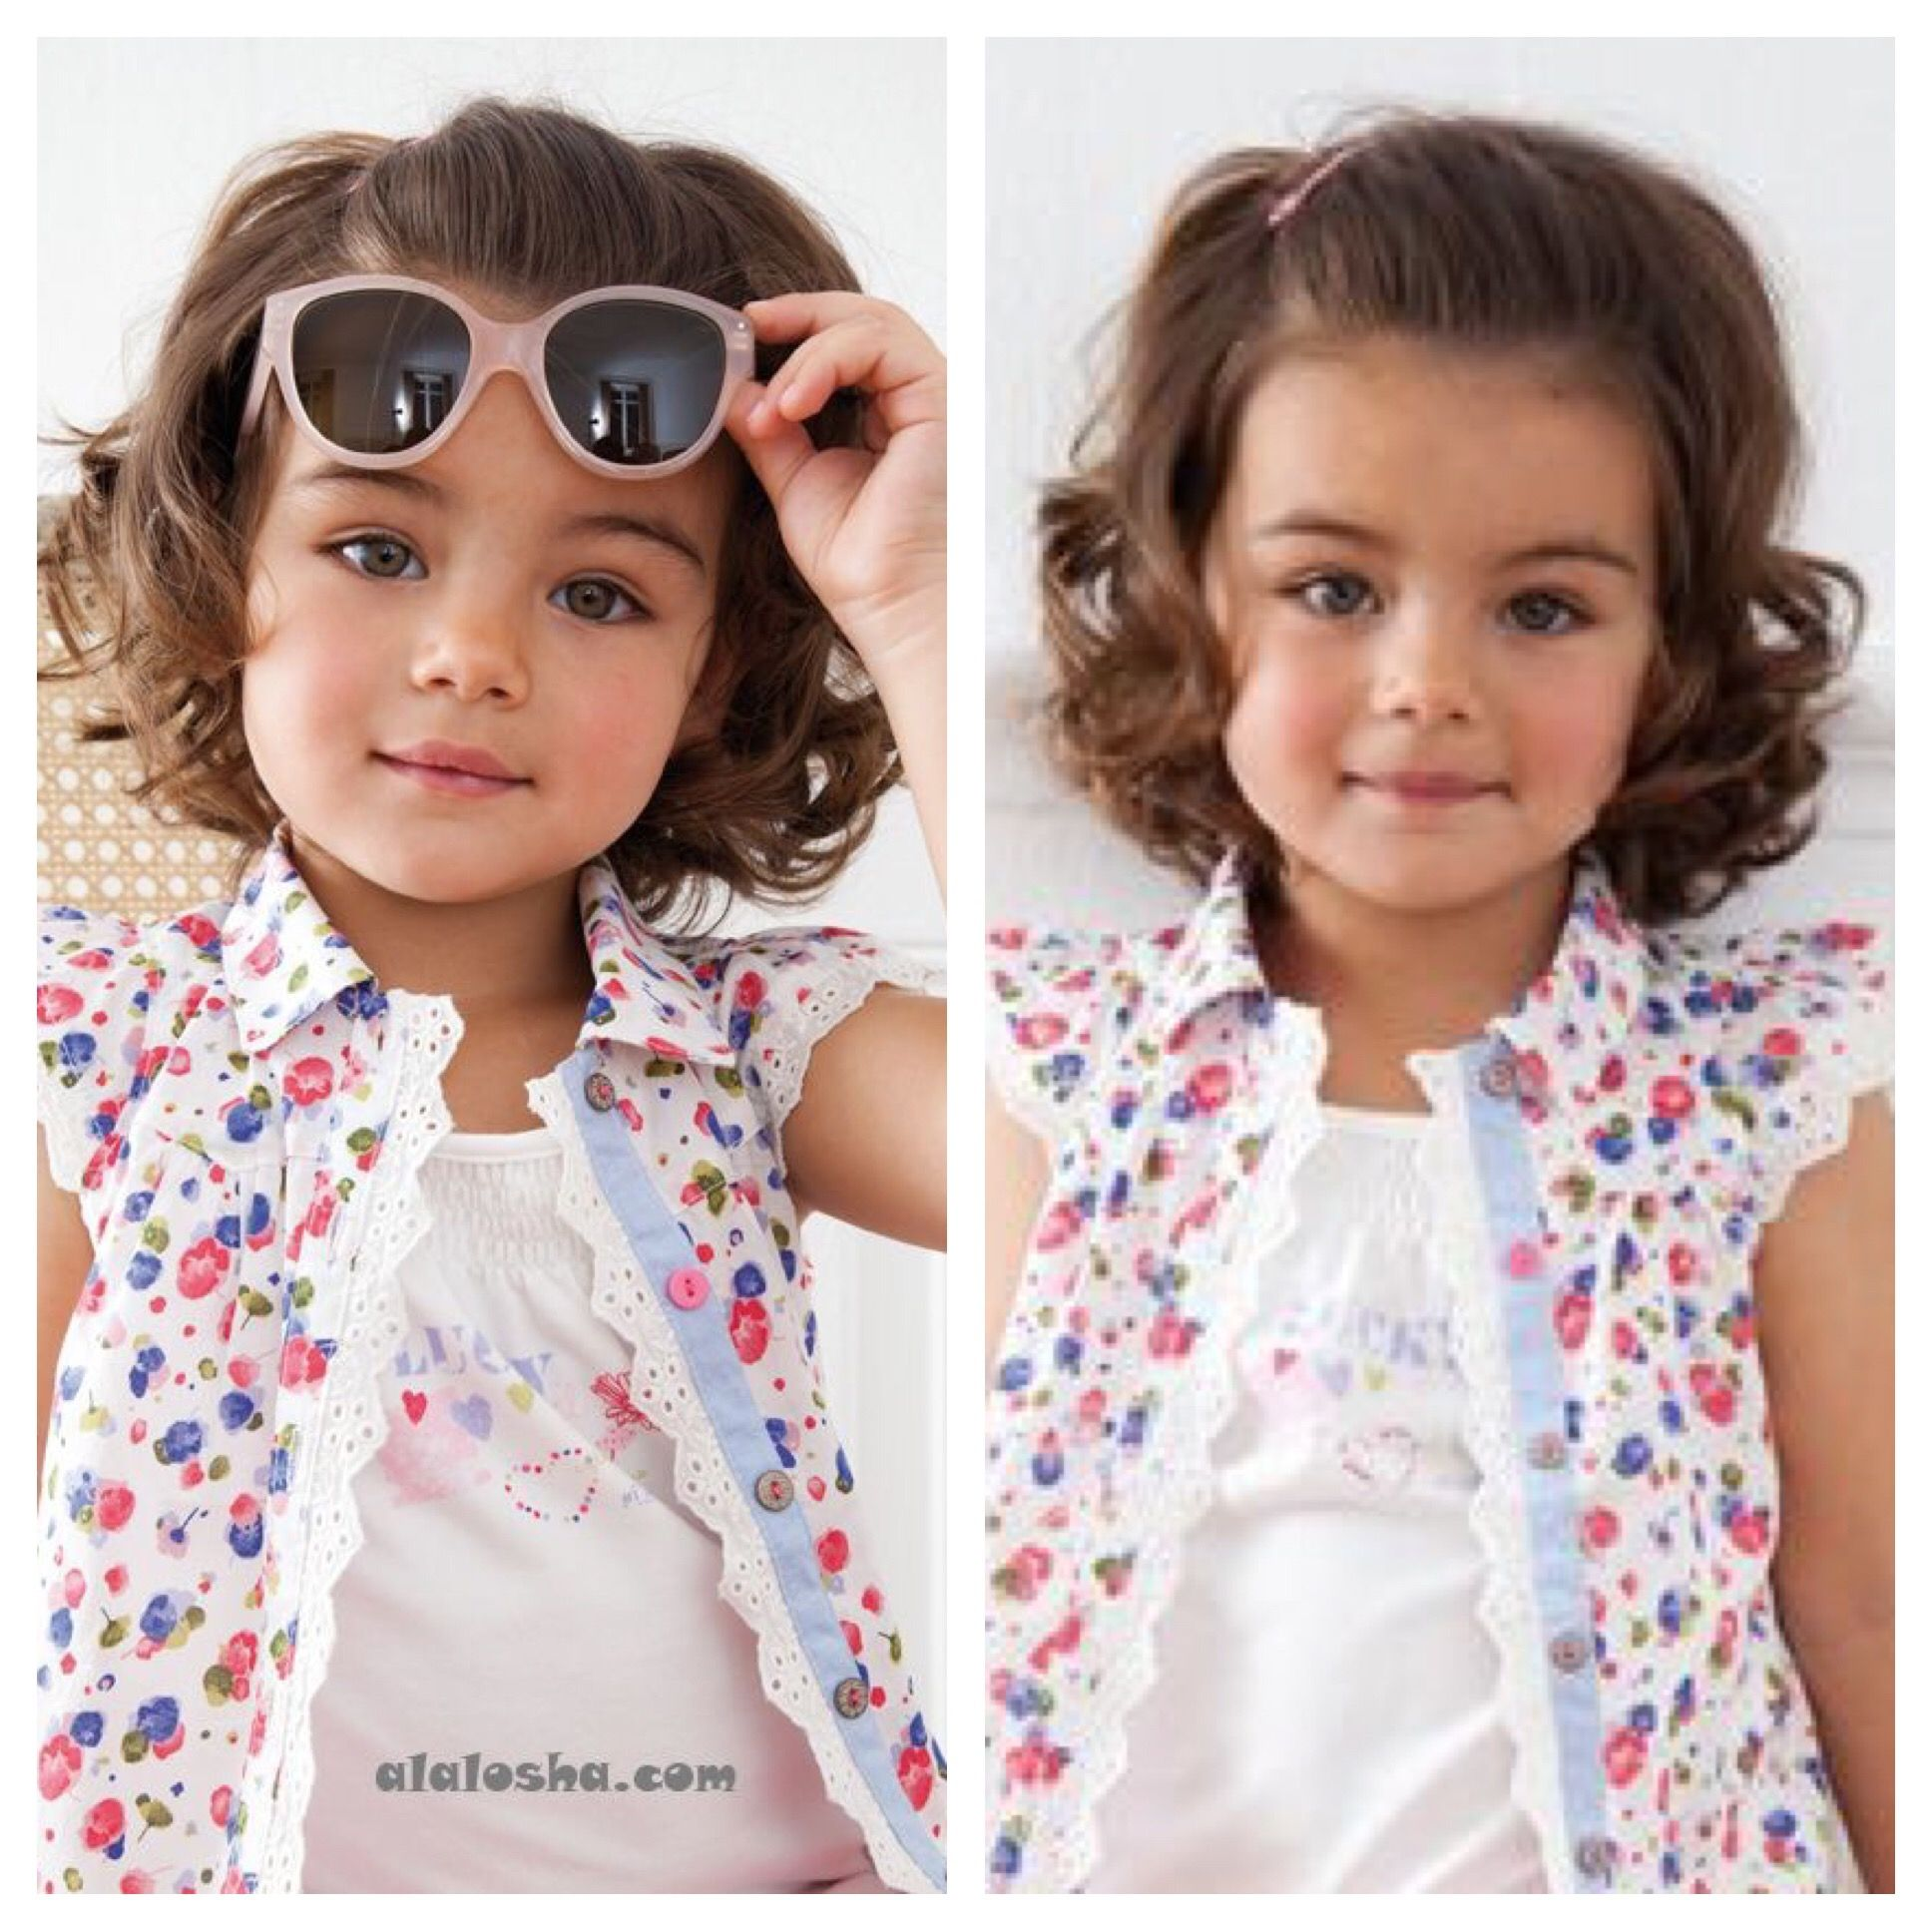 hair styles toddlers with curly